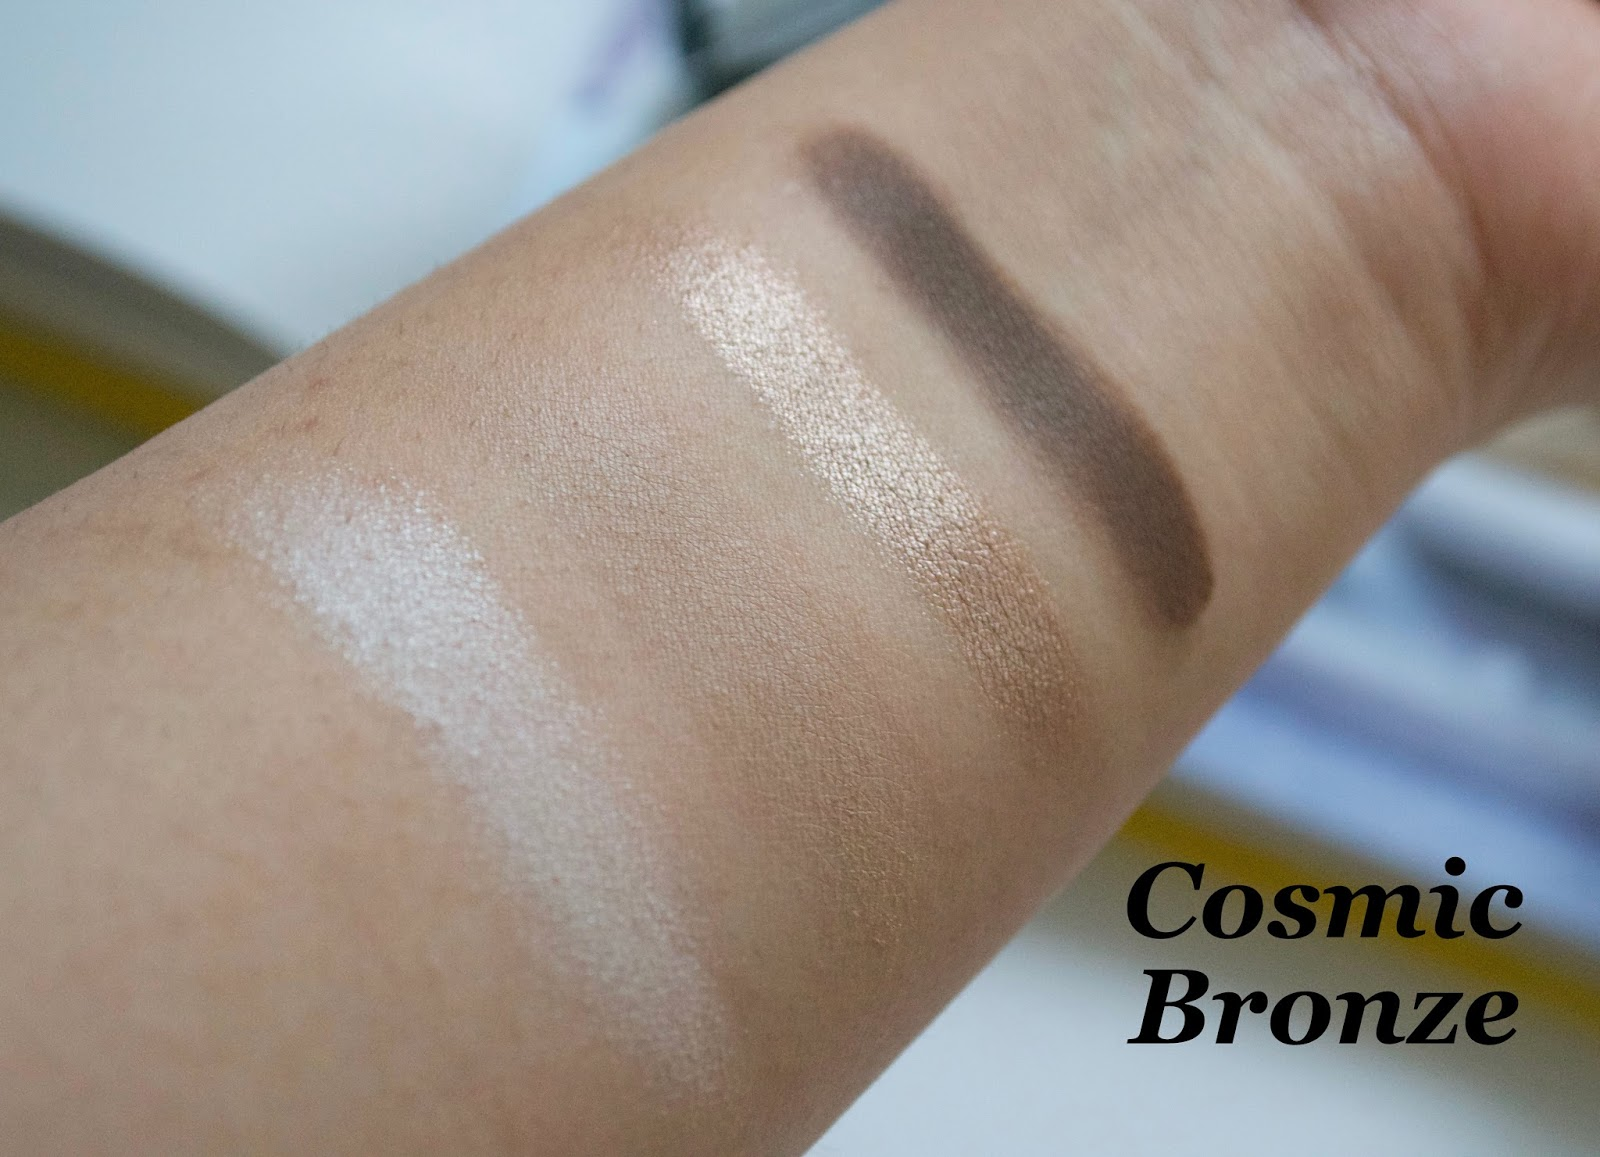 Fleur de Force Eyeshadow Quad Cosmic Bronze Swatch - Aspiring Londoner